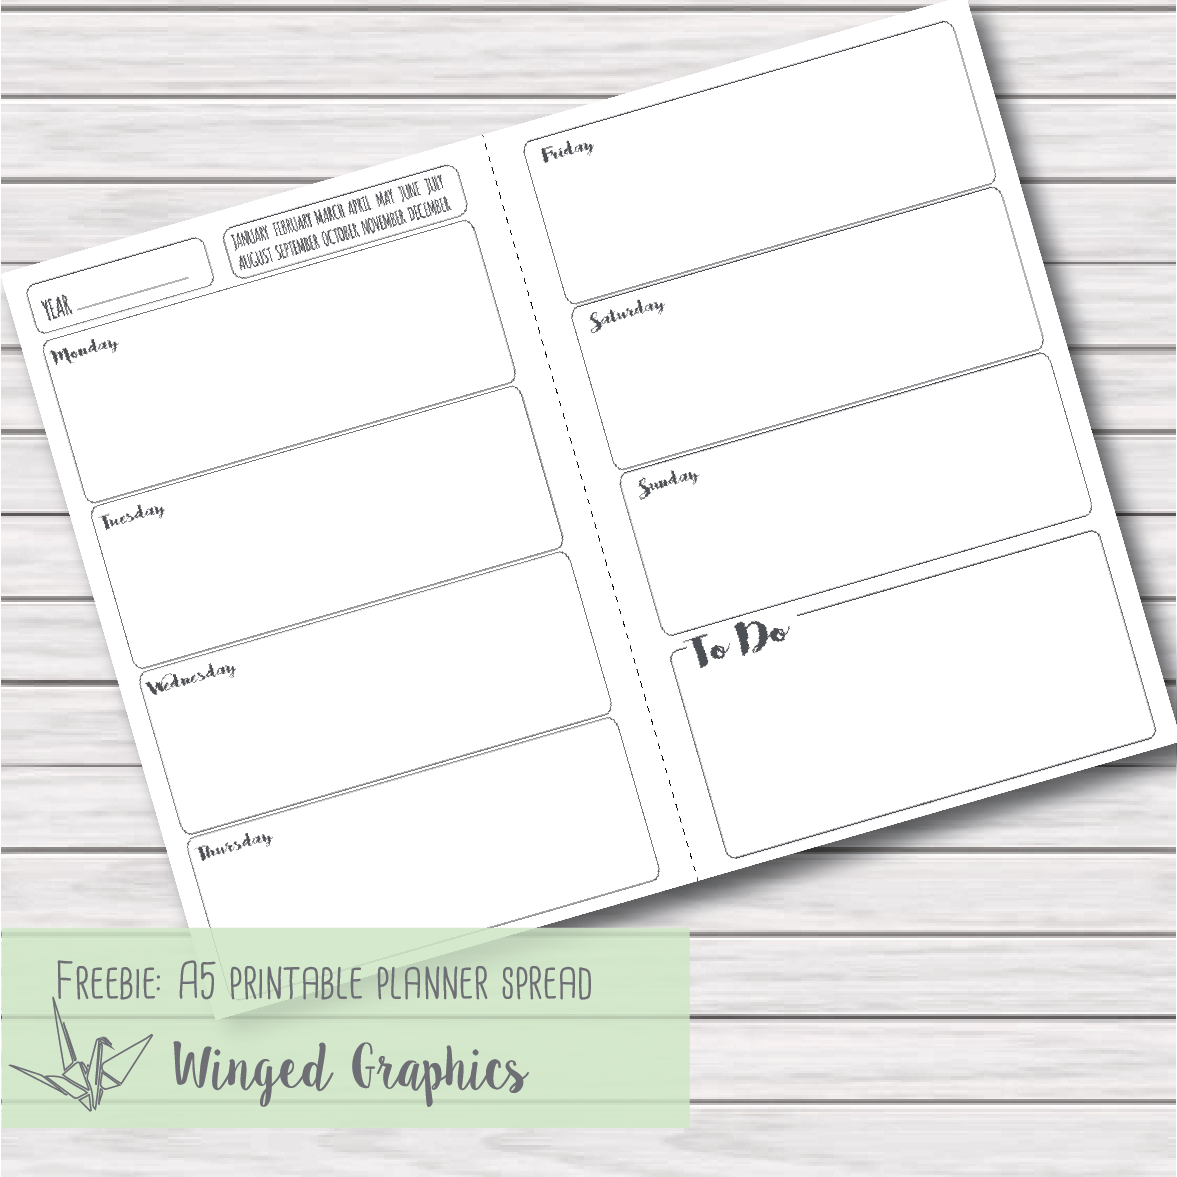 Old Fashioned image for freebie planner